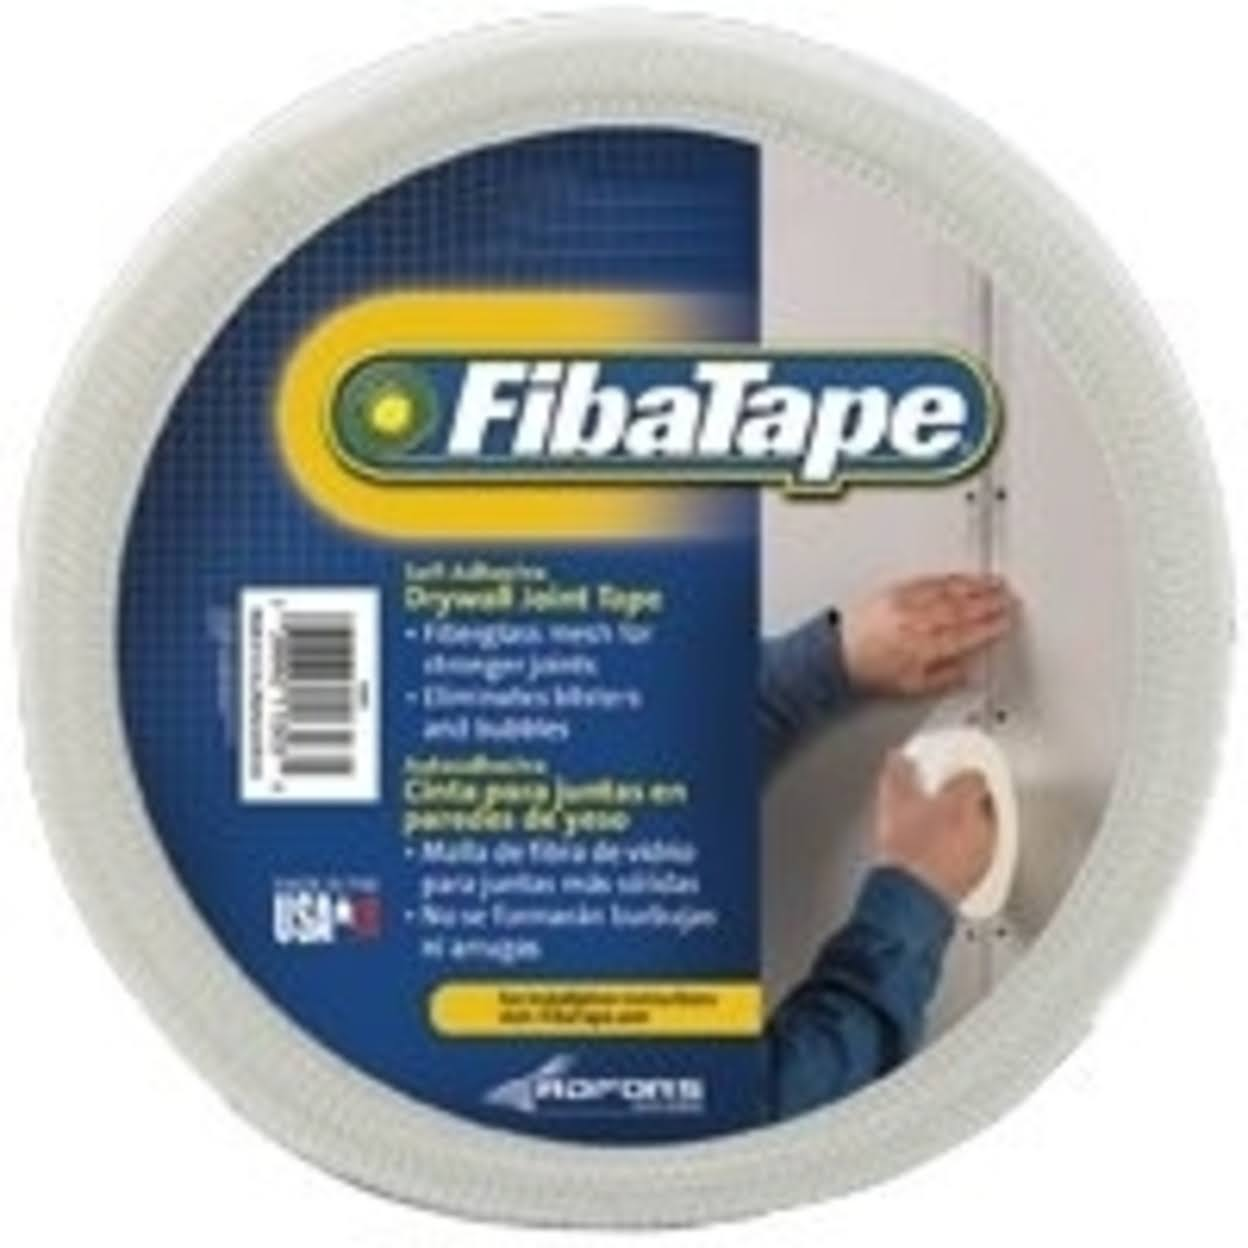 FibaTape Drywall Joint Tape - White